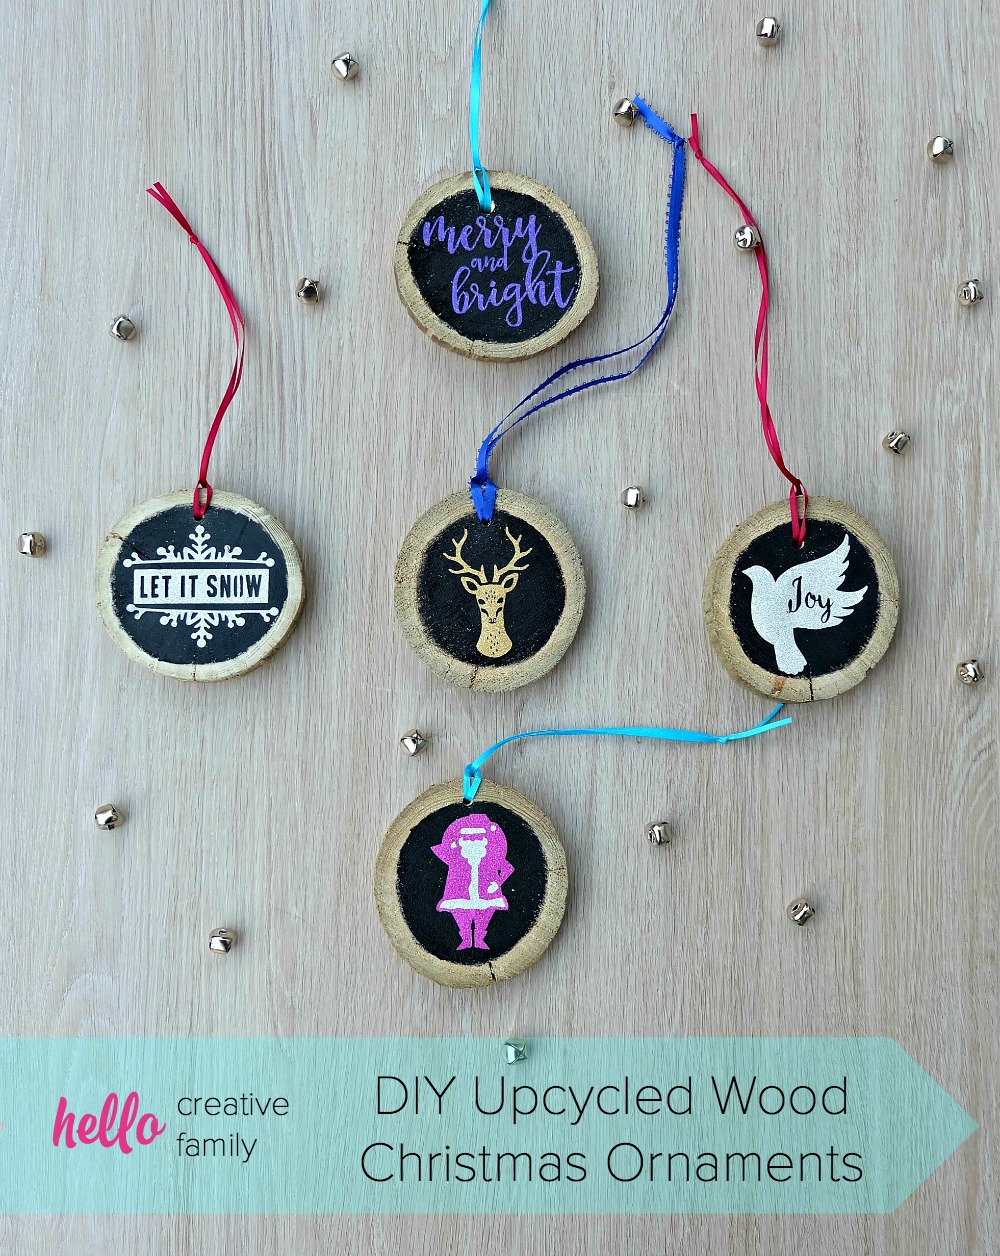 27+ DIY Christmas Ornaments Kids Can Craft- DIY Upcycled Wood Christmas Ornaments would make a great handmade gift idea!